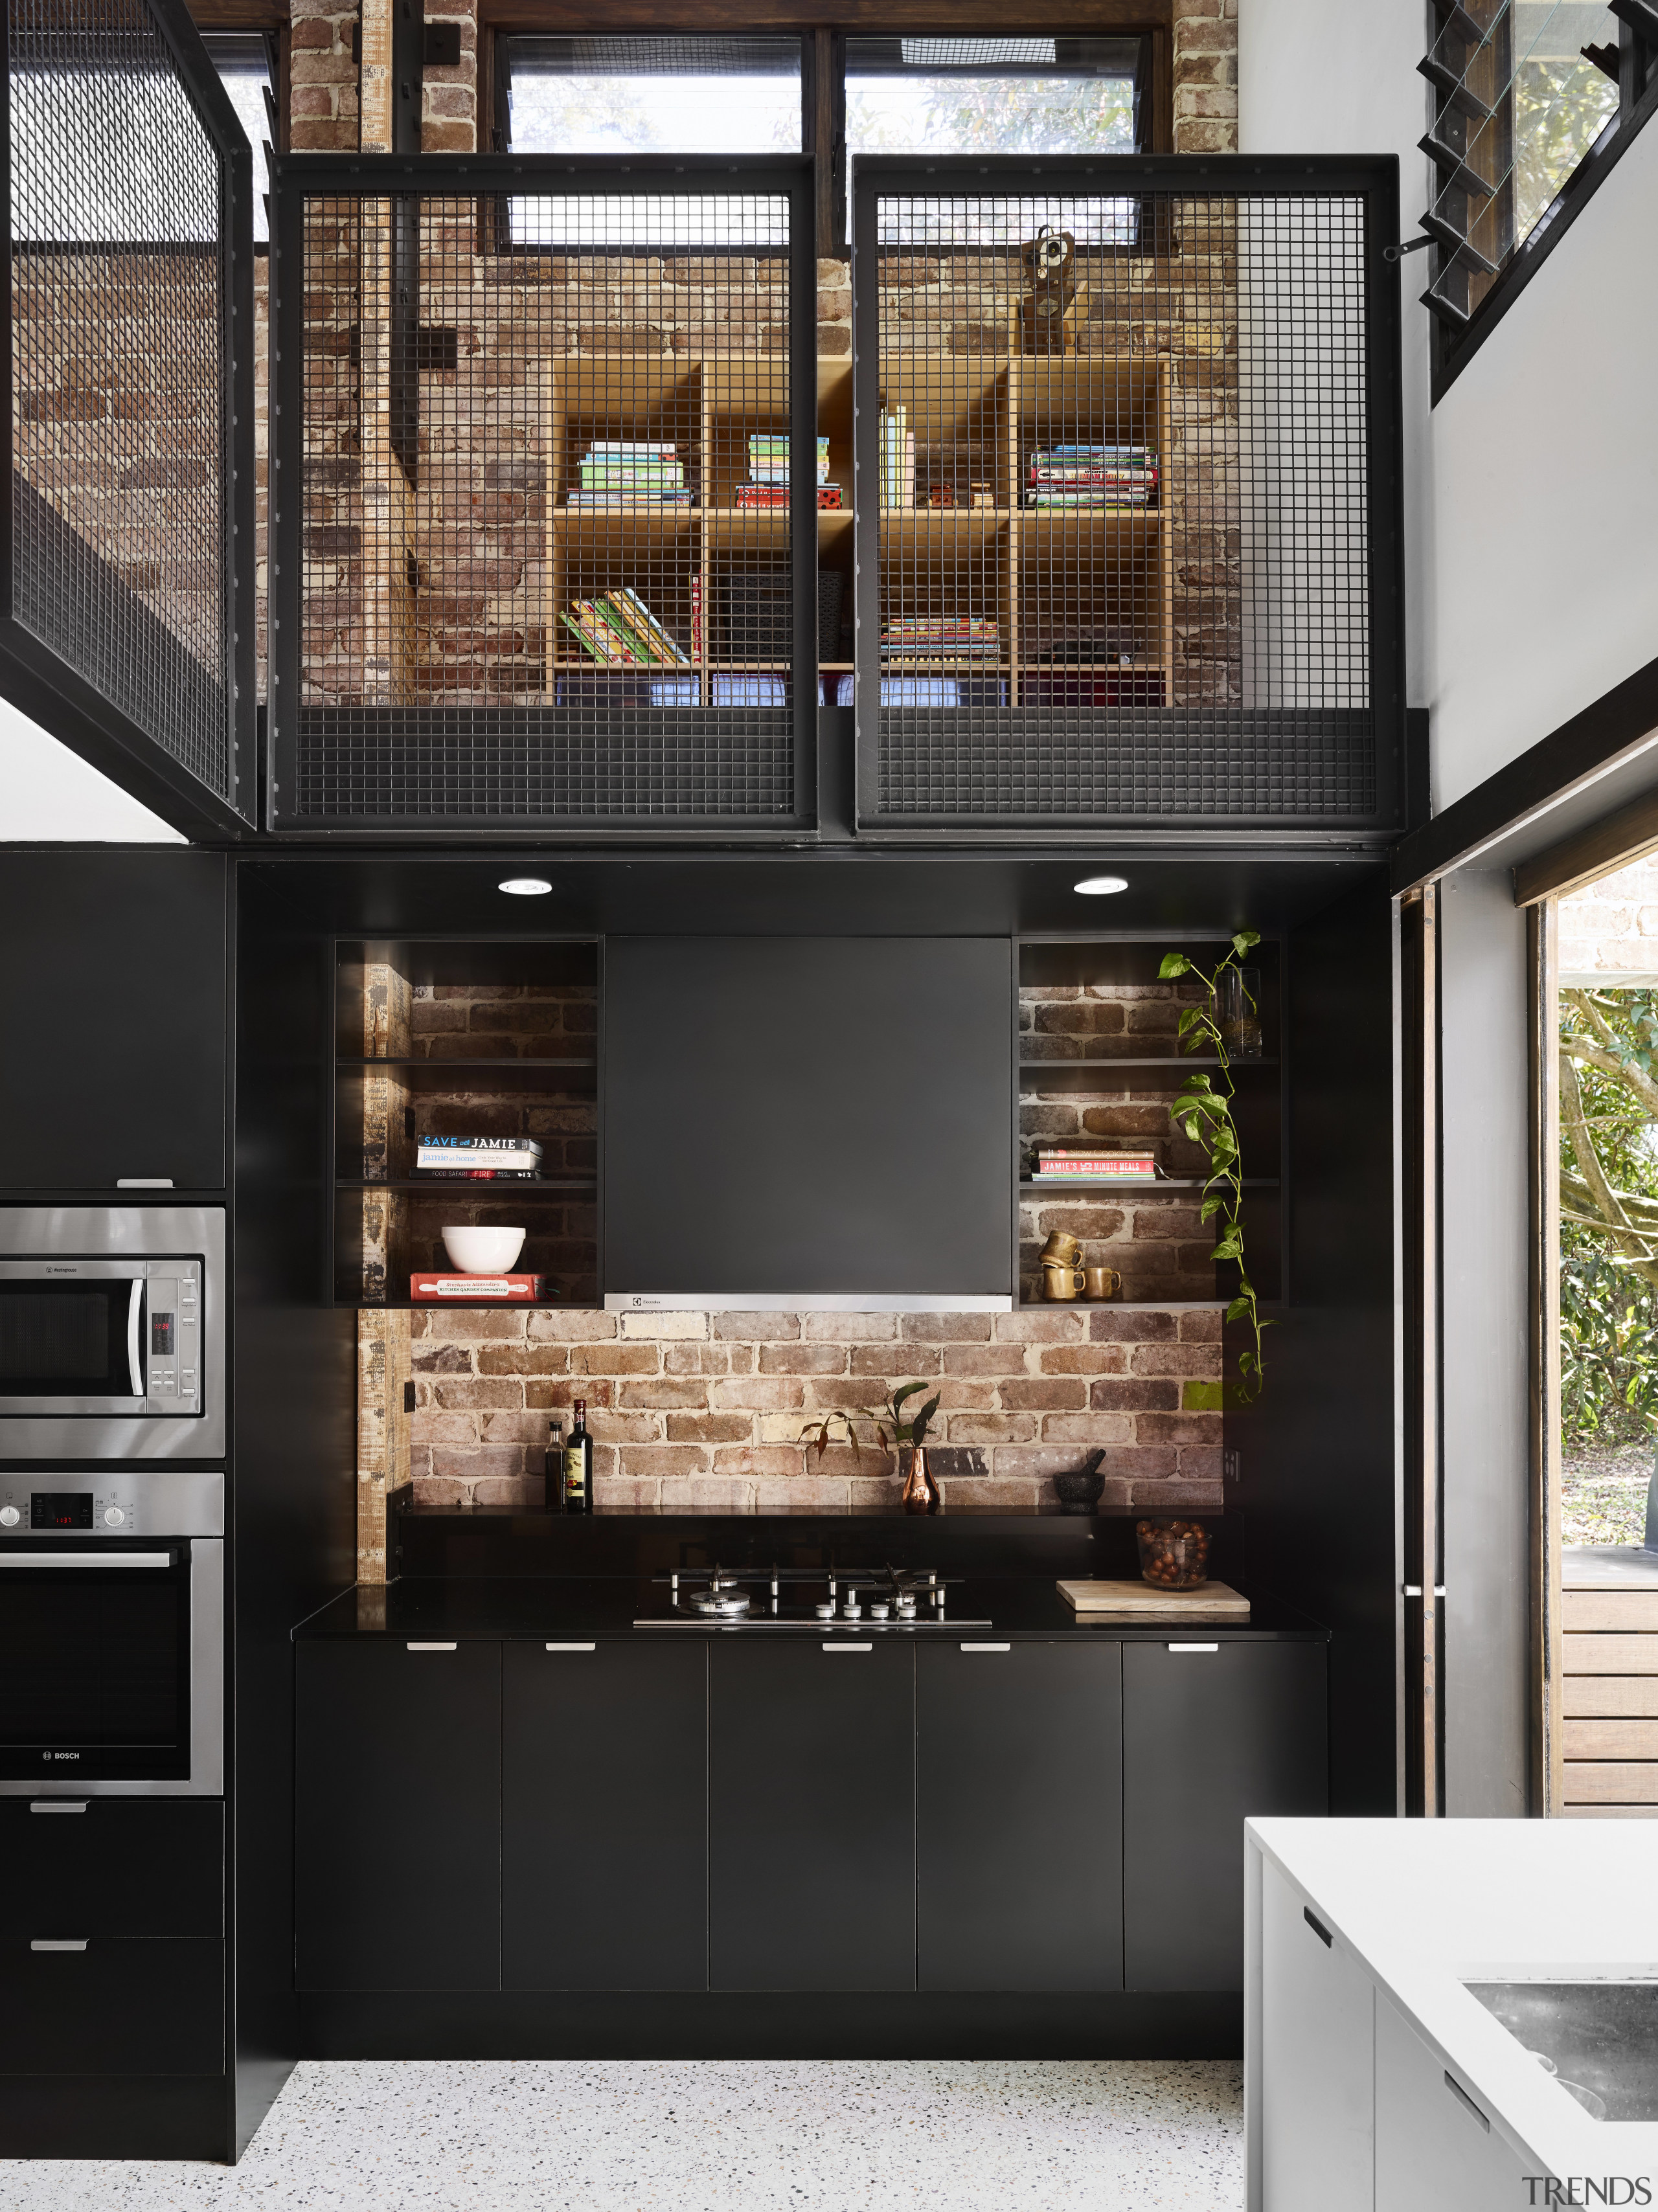 On this project by Maytree Studios, the recycled countertop, interior design, kitchen, black